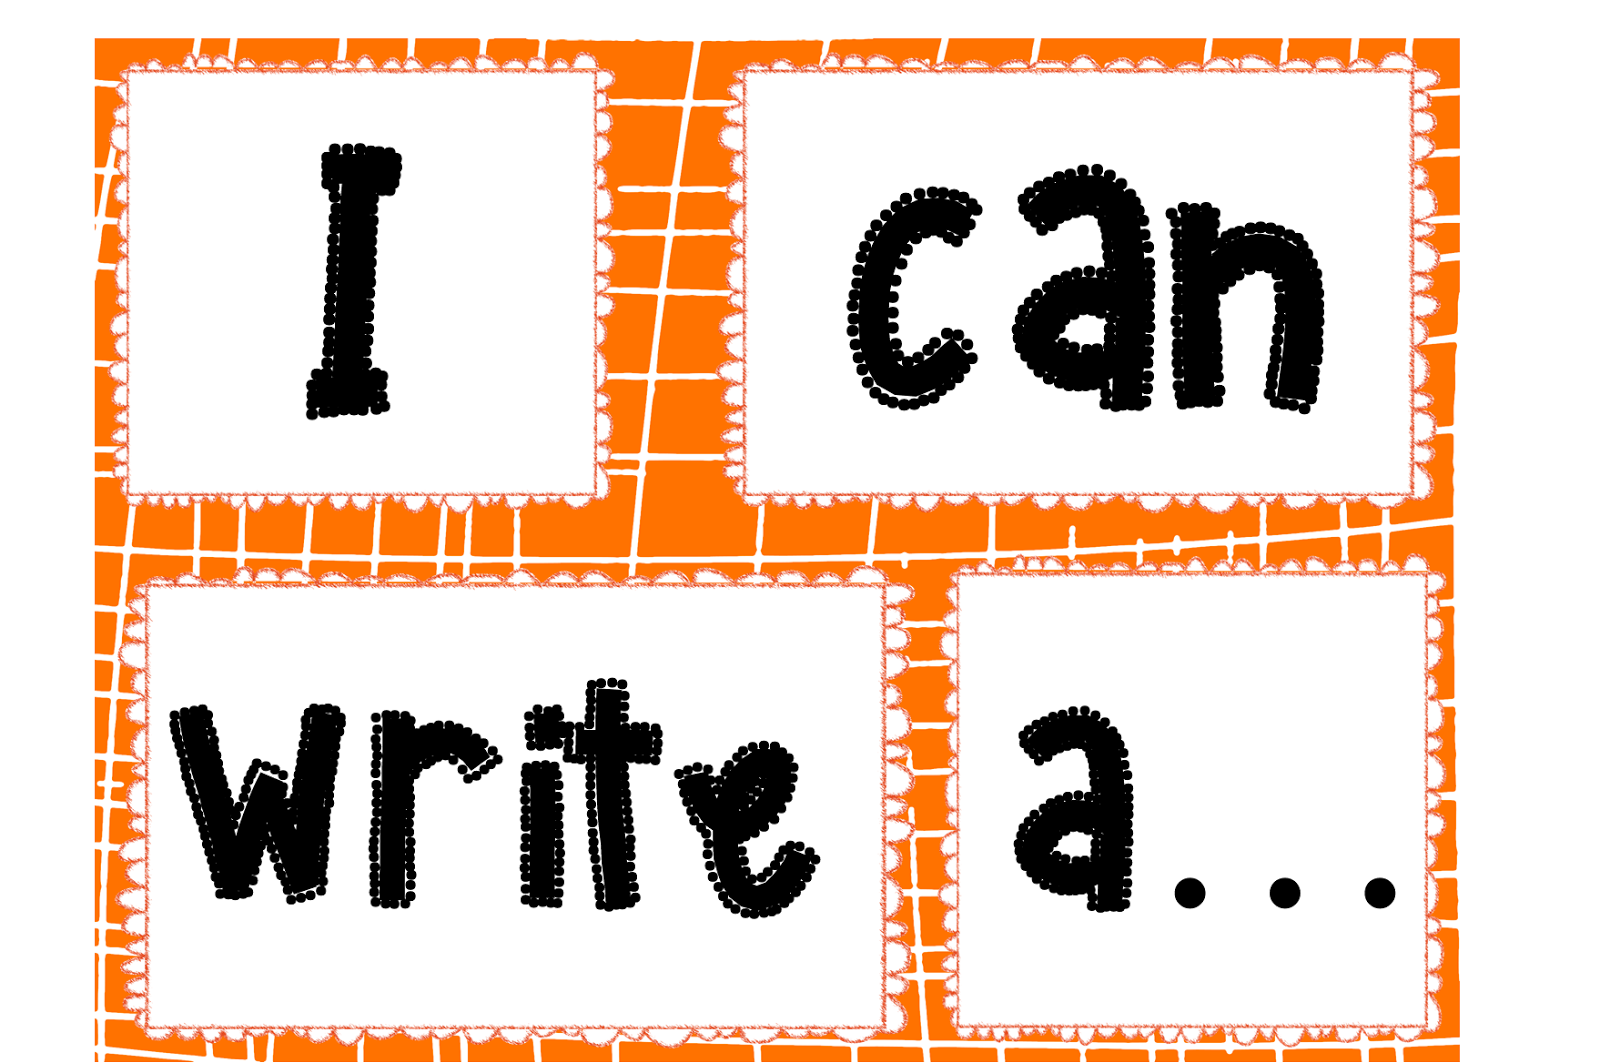 Writing Center Clipart craft projects, School Clipart.